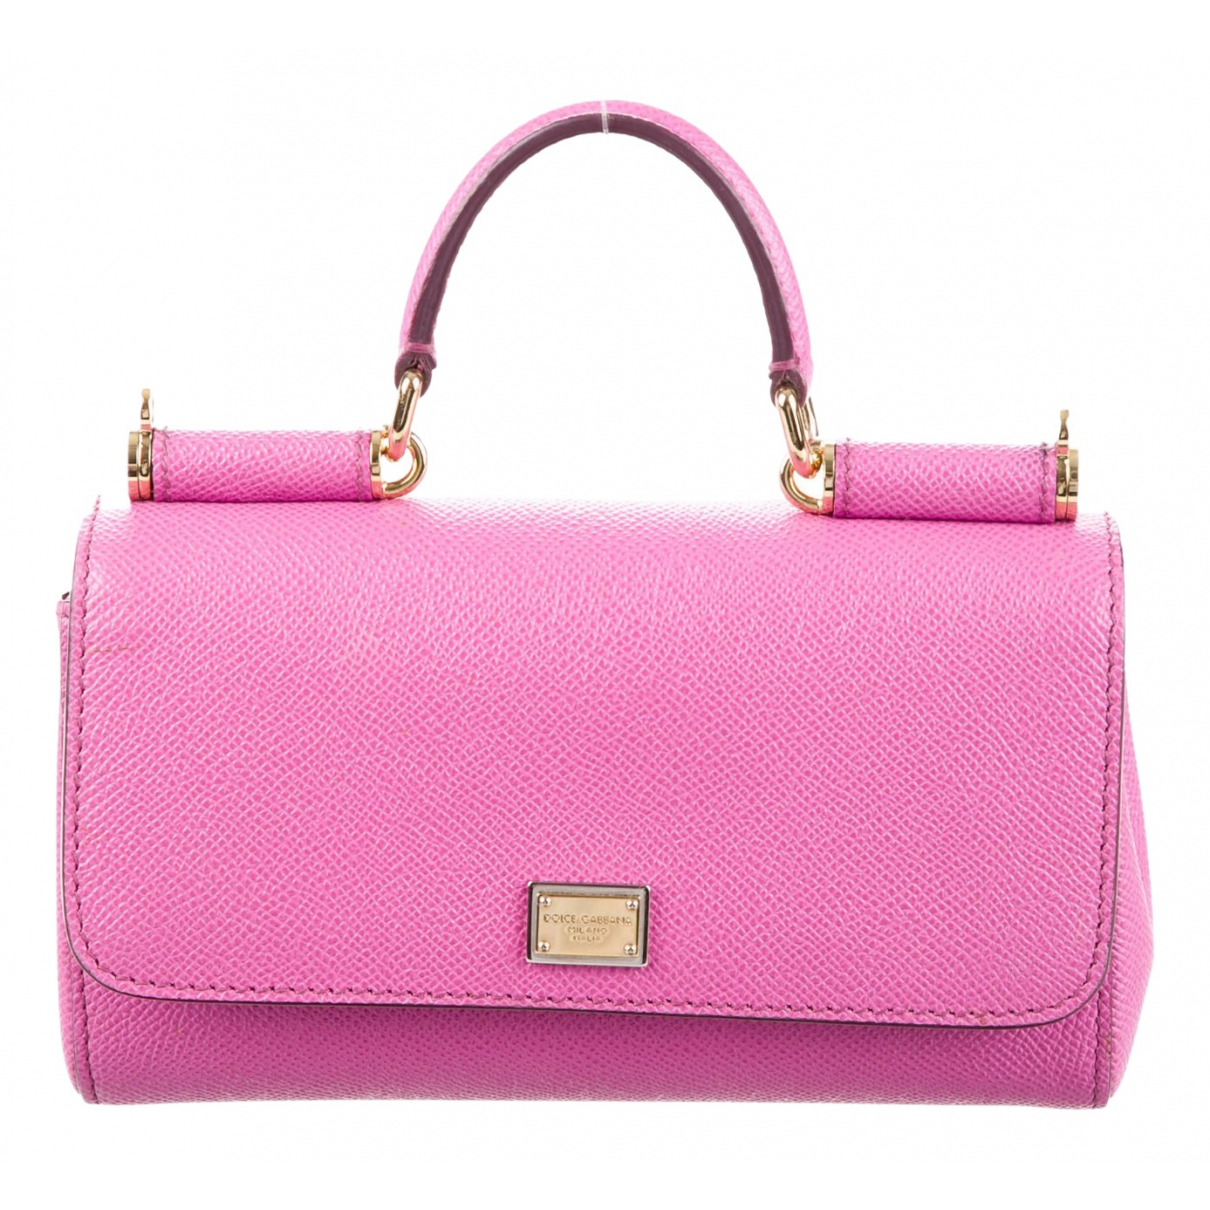 Dolce & Gabbana Sicily Pink Leather handbag for Women N